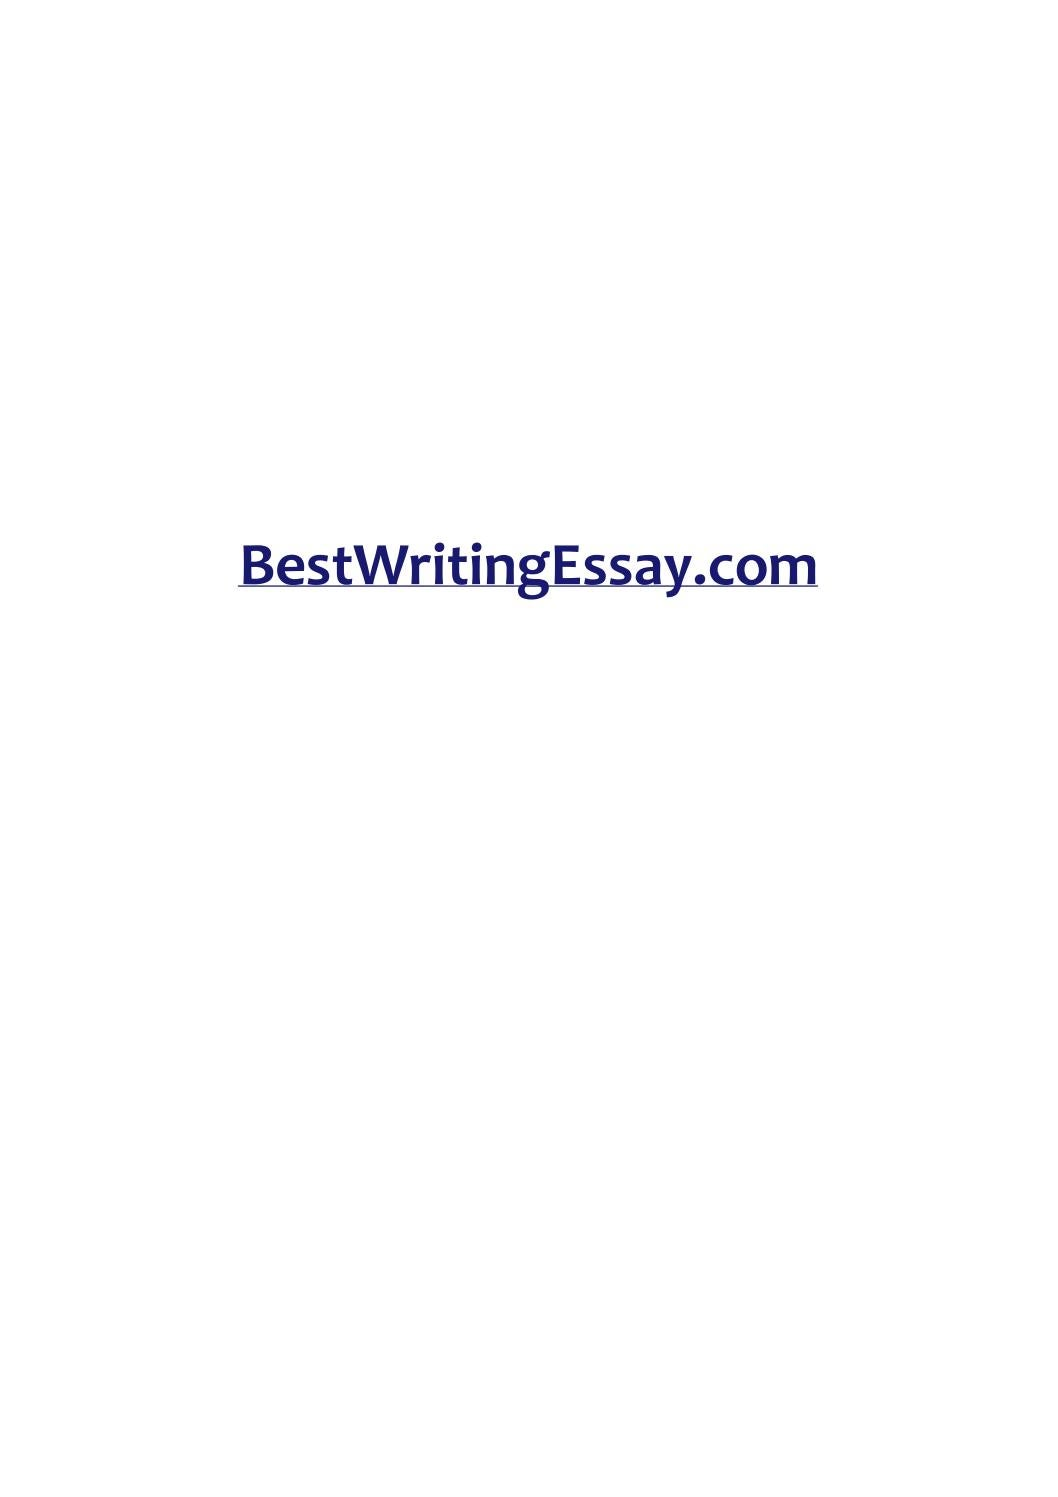 Professional dissertation chapter ghostwriting service gb